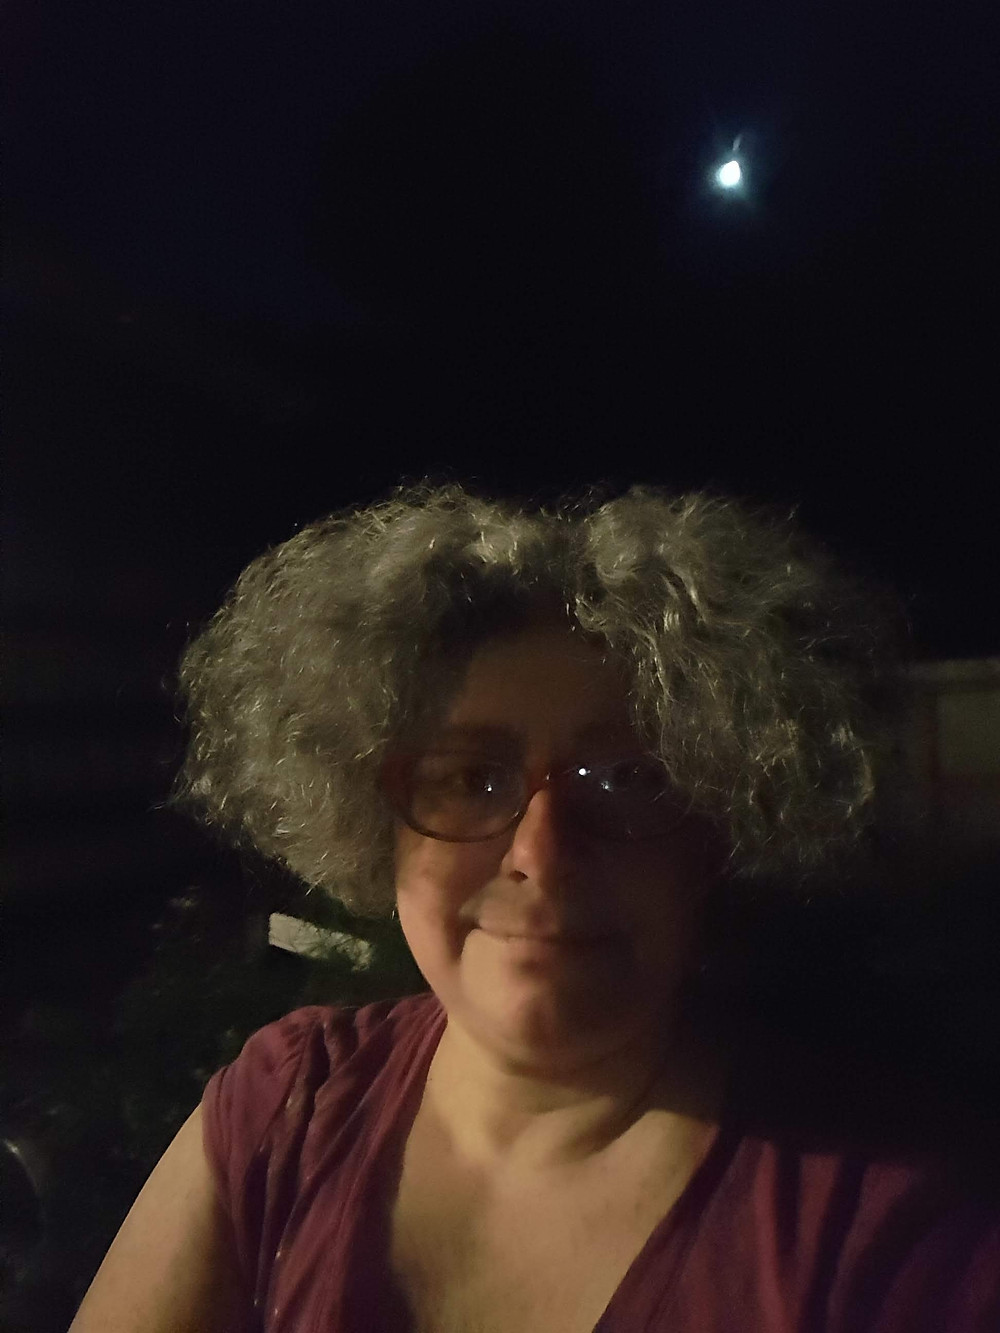 Selfie of woman outside in fenced yard at night with Traveler moon in background.